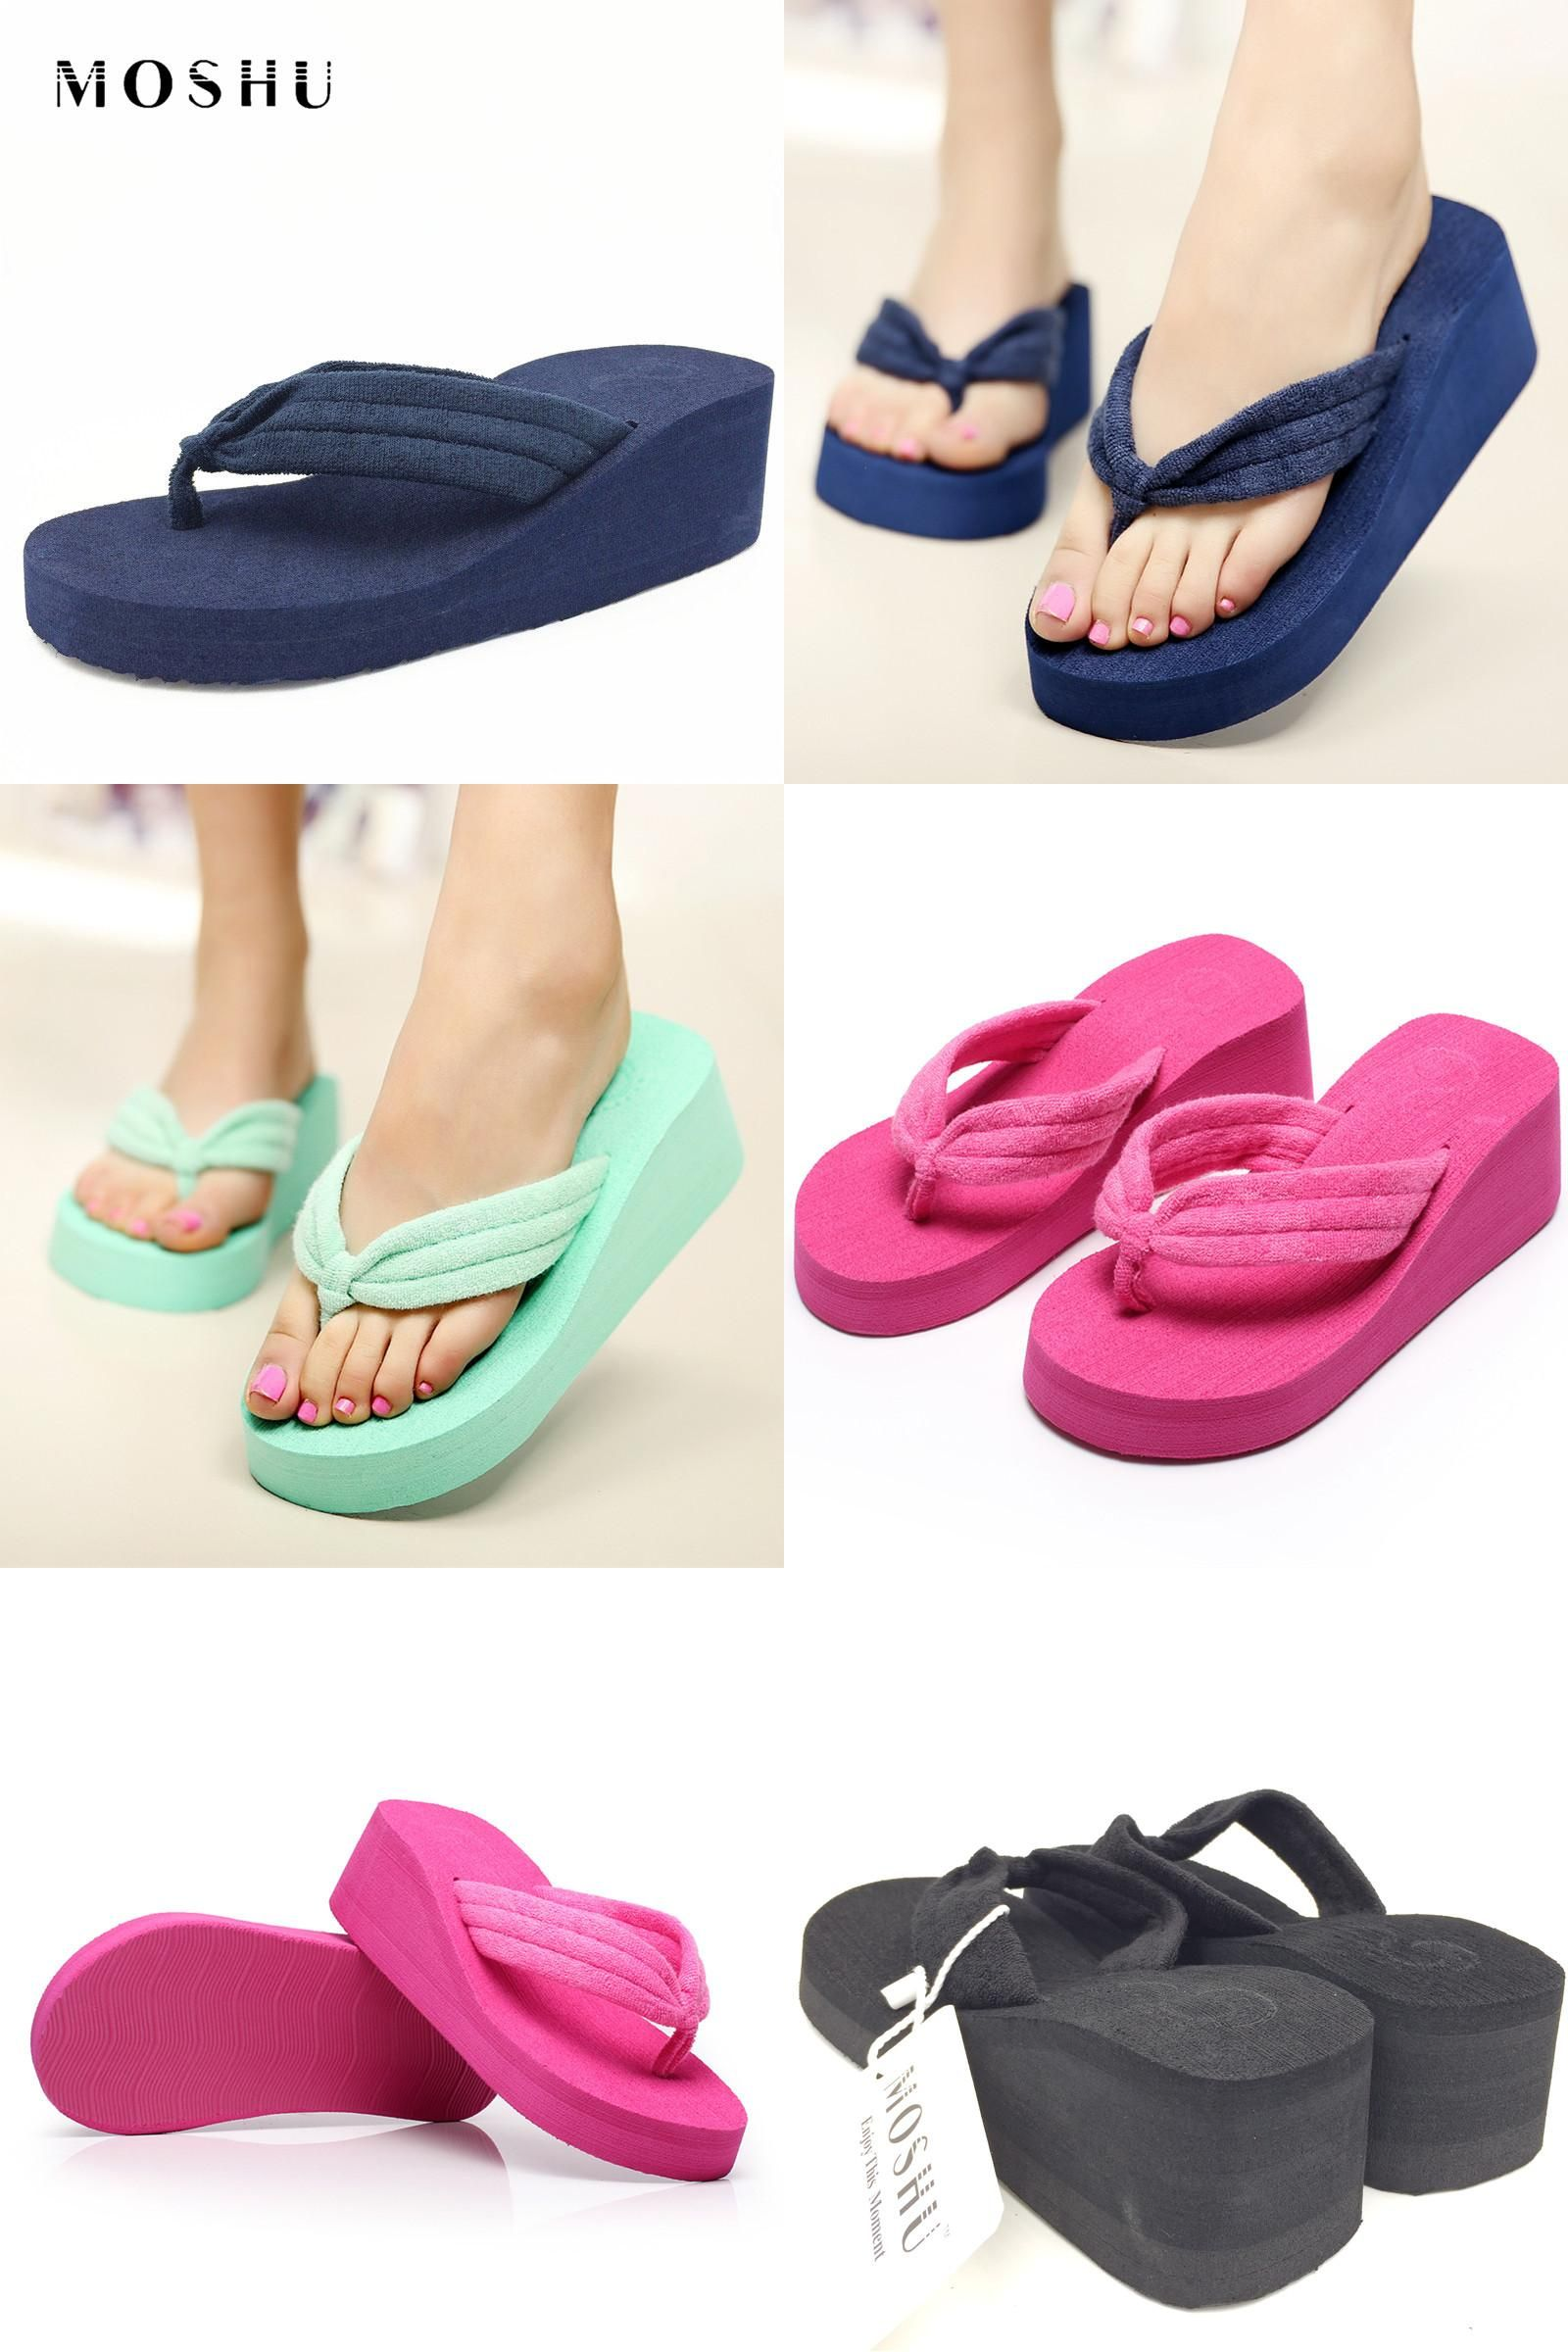 Women Flower Summer Sandals de Mujer Slippers Indoor Outdoor Flip-Flops Beach Shoes Comfortable Dressy